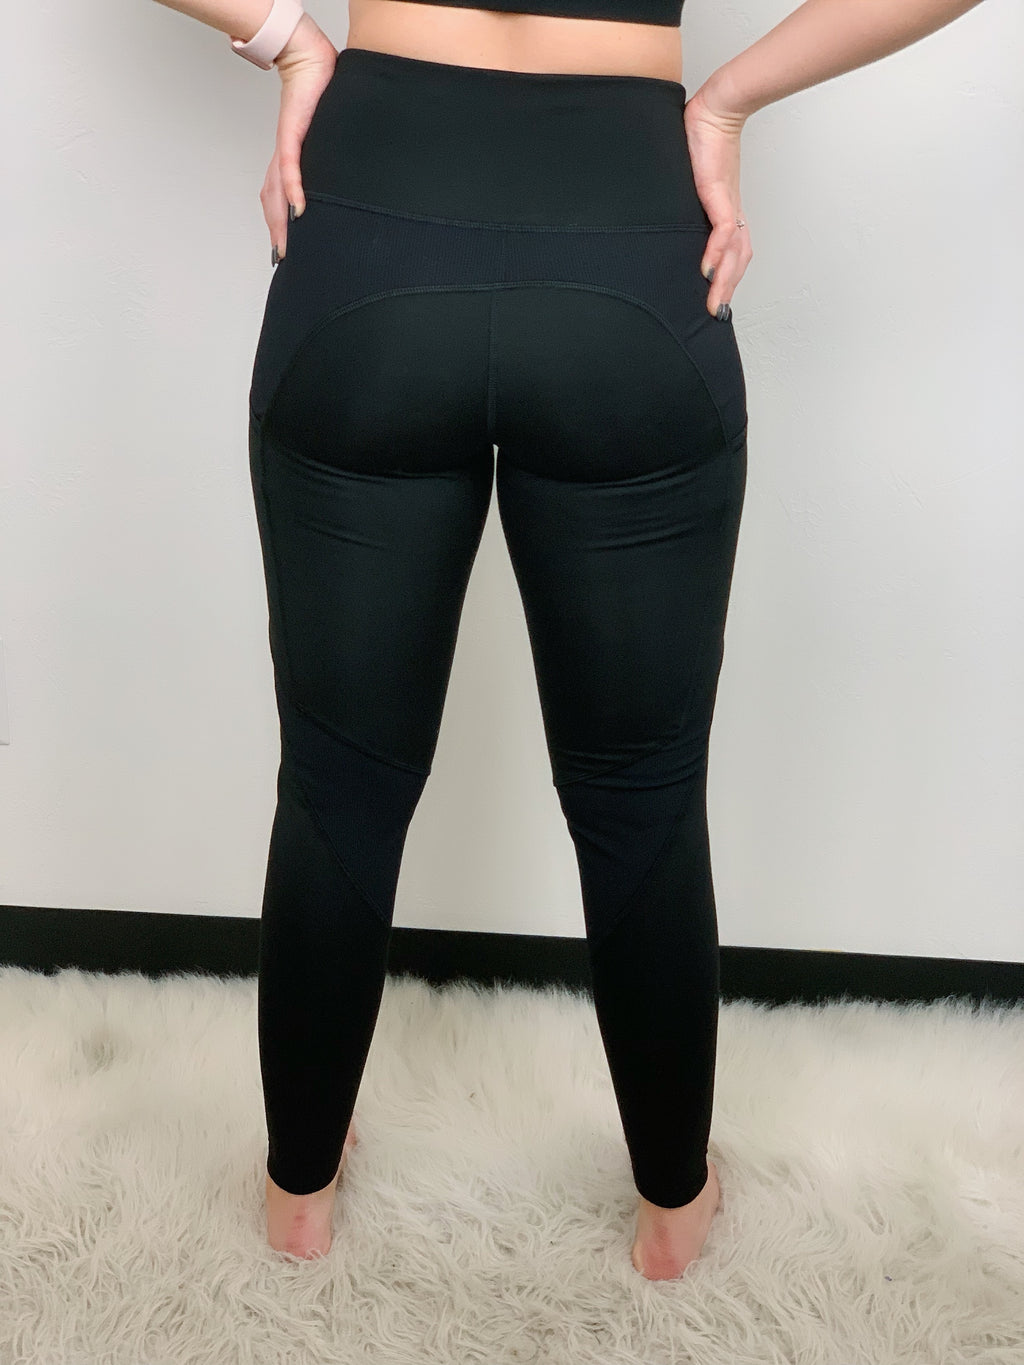 In Movement Leggings